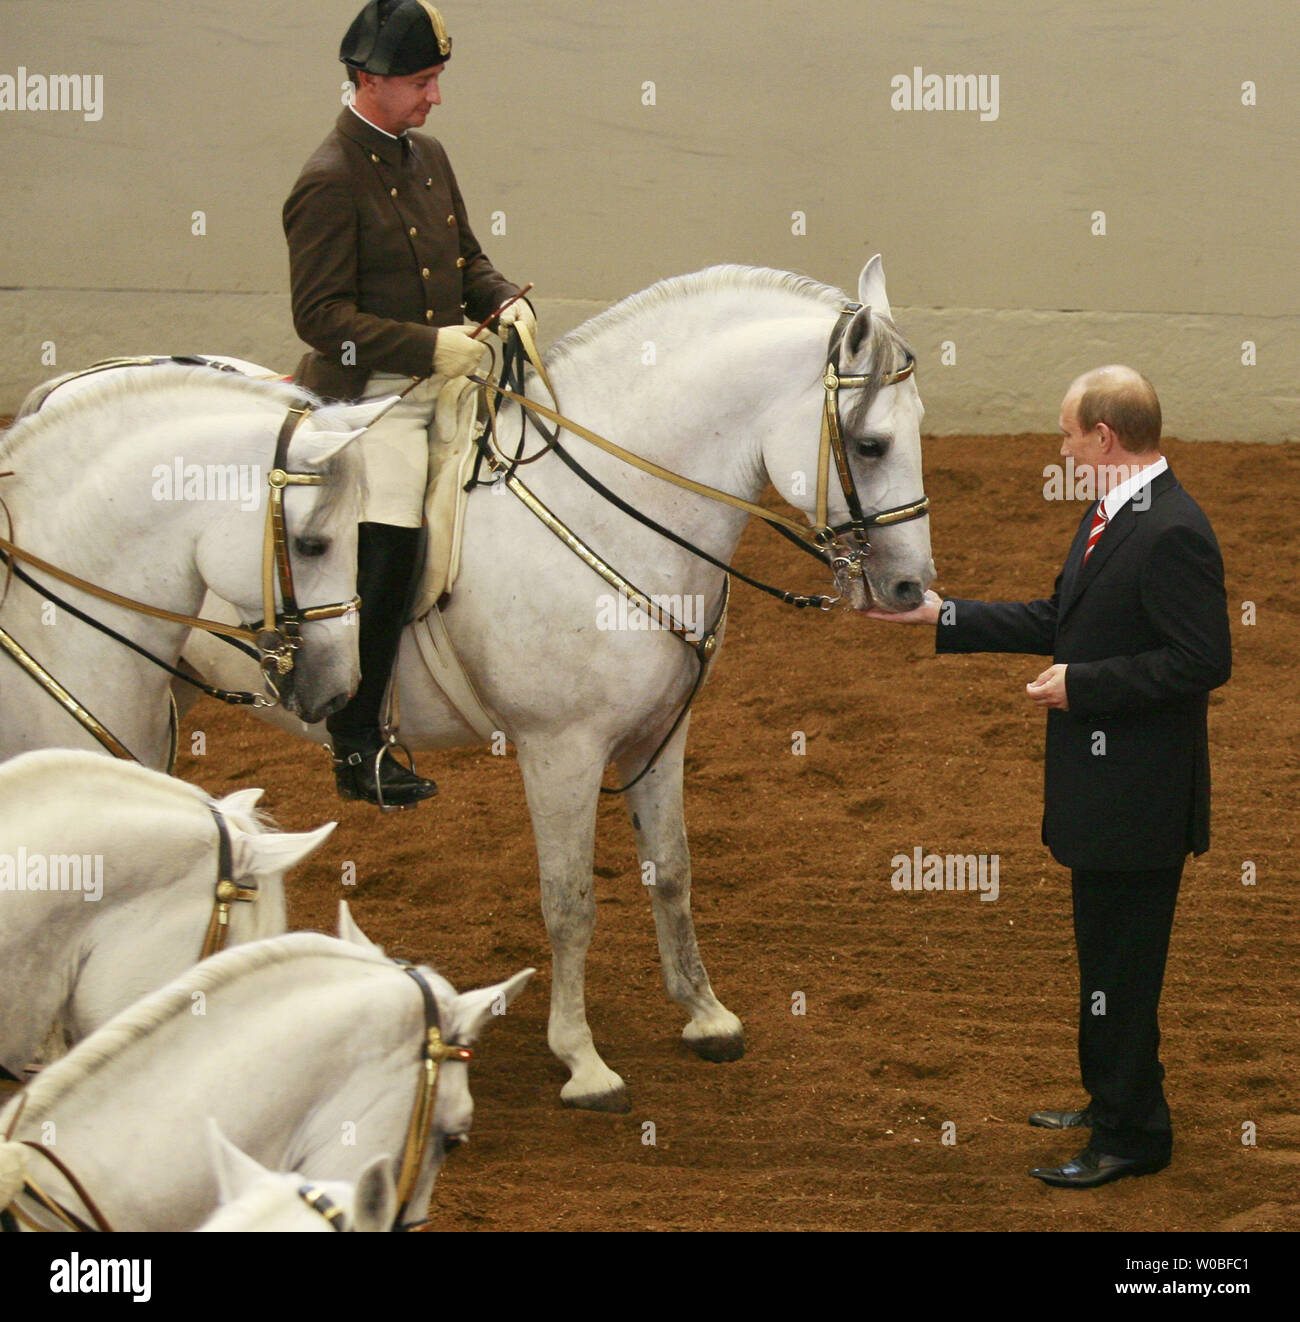 Russian President Vladimir Putin Riding High Resolution Stock Photography And Images Alamy